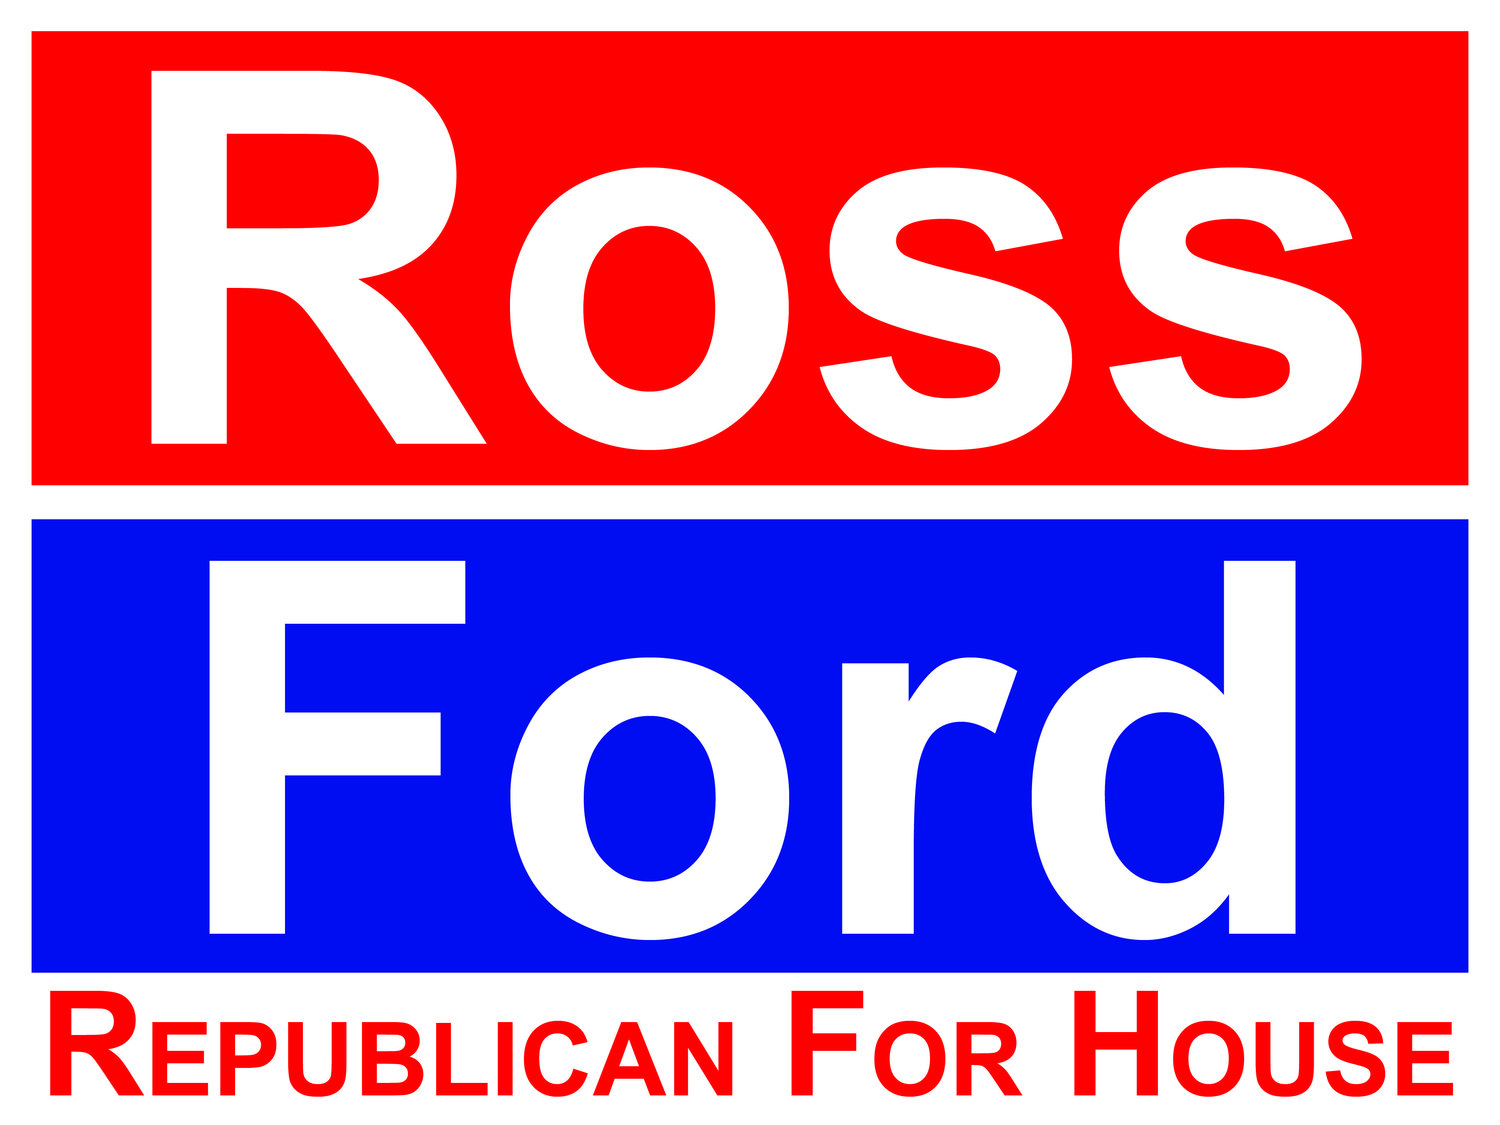 Ross Ford